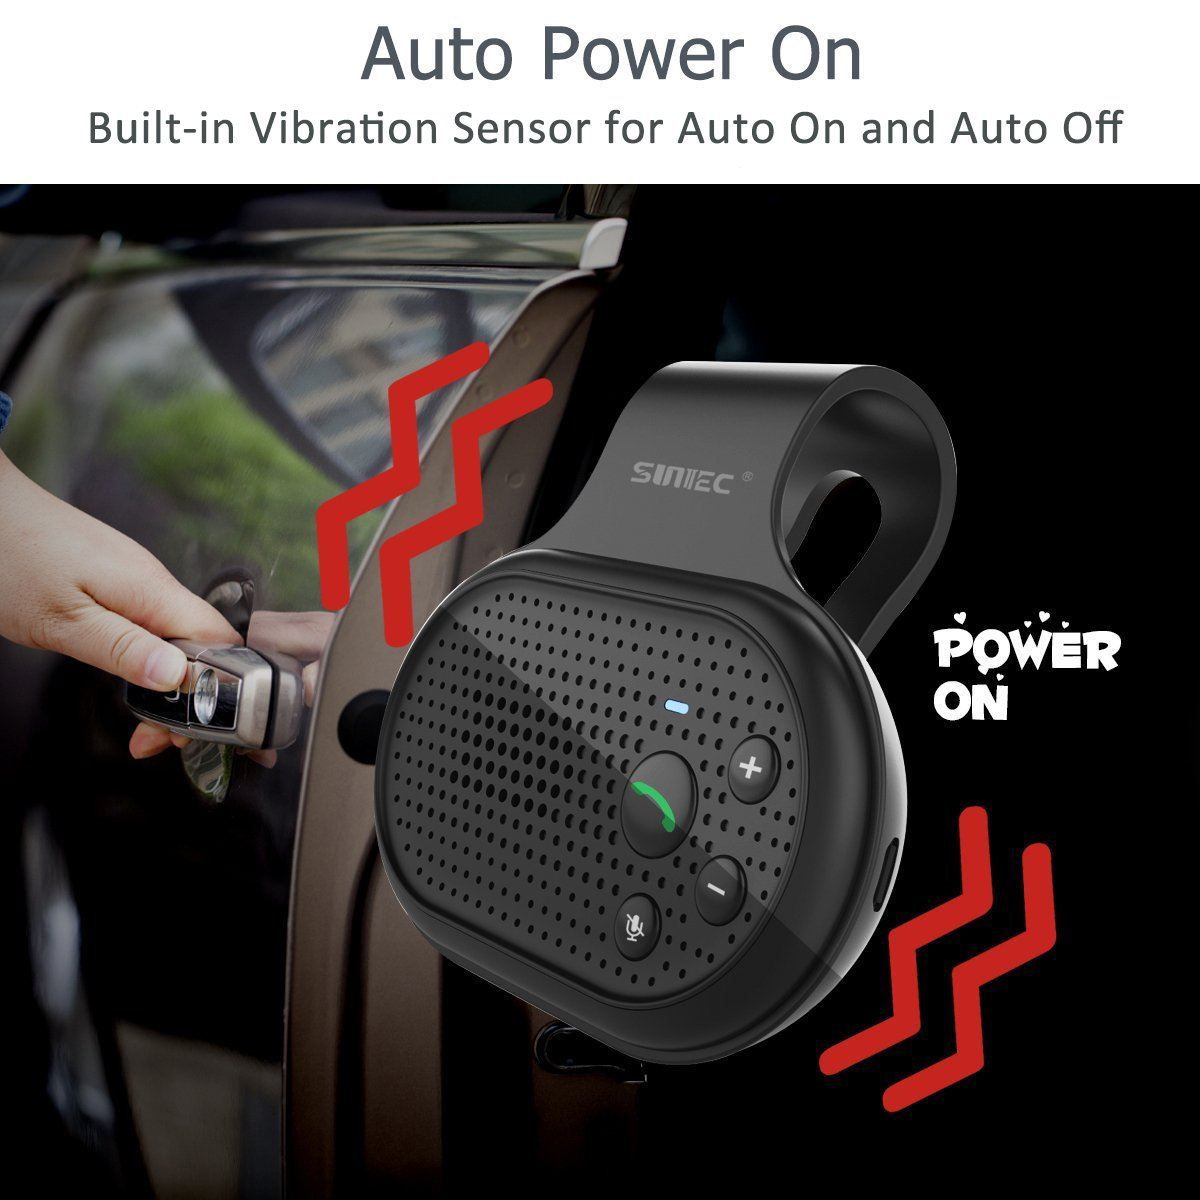 Bluetooth Hands Free Car Speakerphone, SUNITEC Bluetooth Visor Car Kit In-Car Phone Speaker AUTO POWER ON Support GPS, Music and HandsFree Calling for iphone, Samsung and Smartphones [2 Year Warranty] by Sunitec (Image #3)